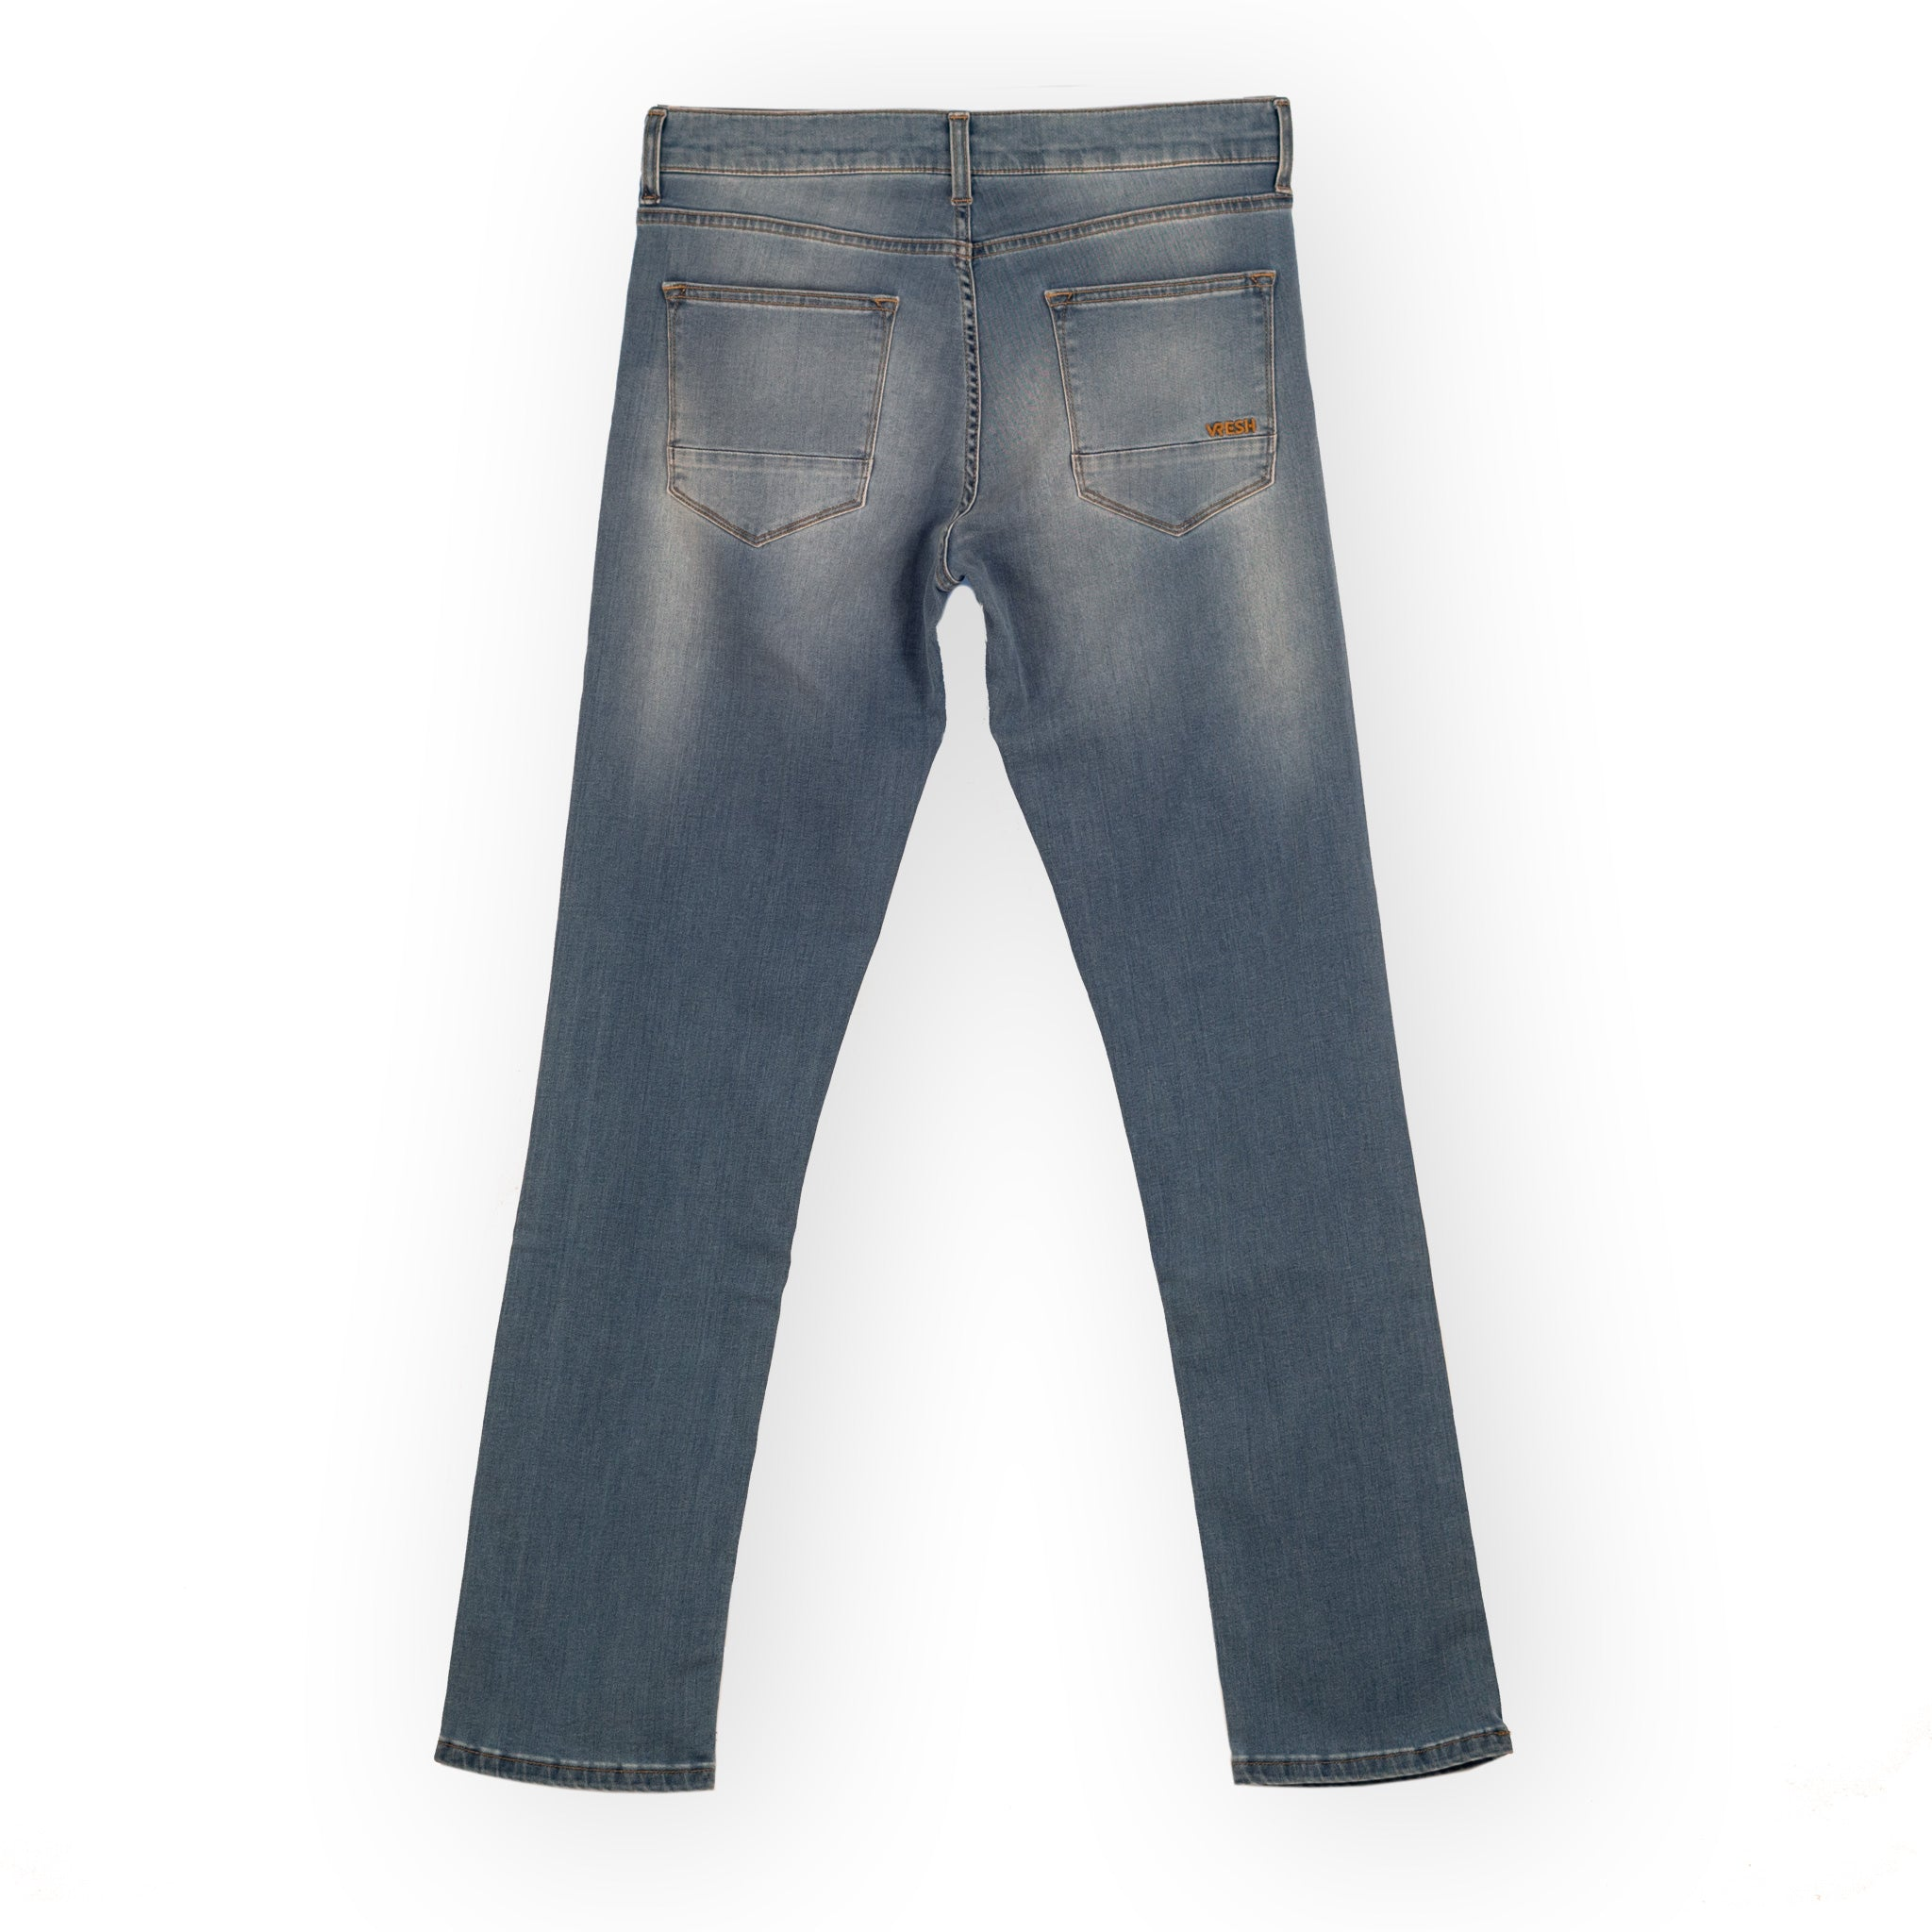 Vresh Jeans 2.0, Light-washed, REGULAR FIT